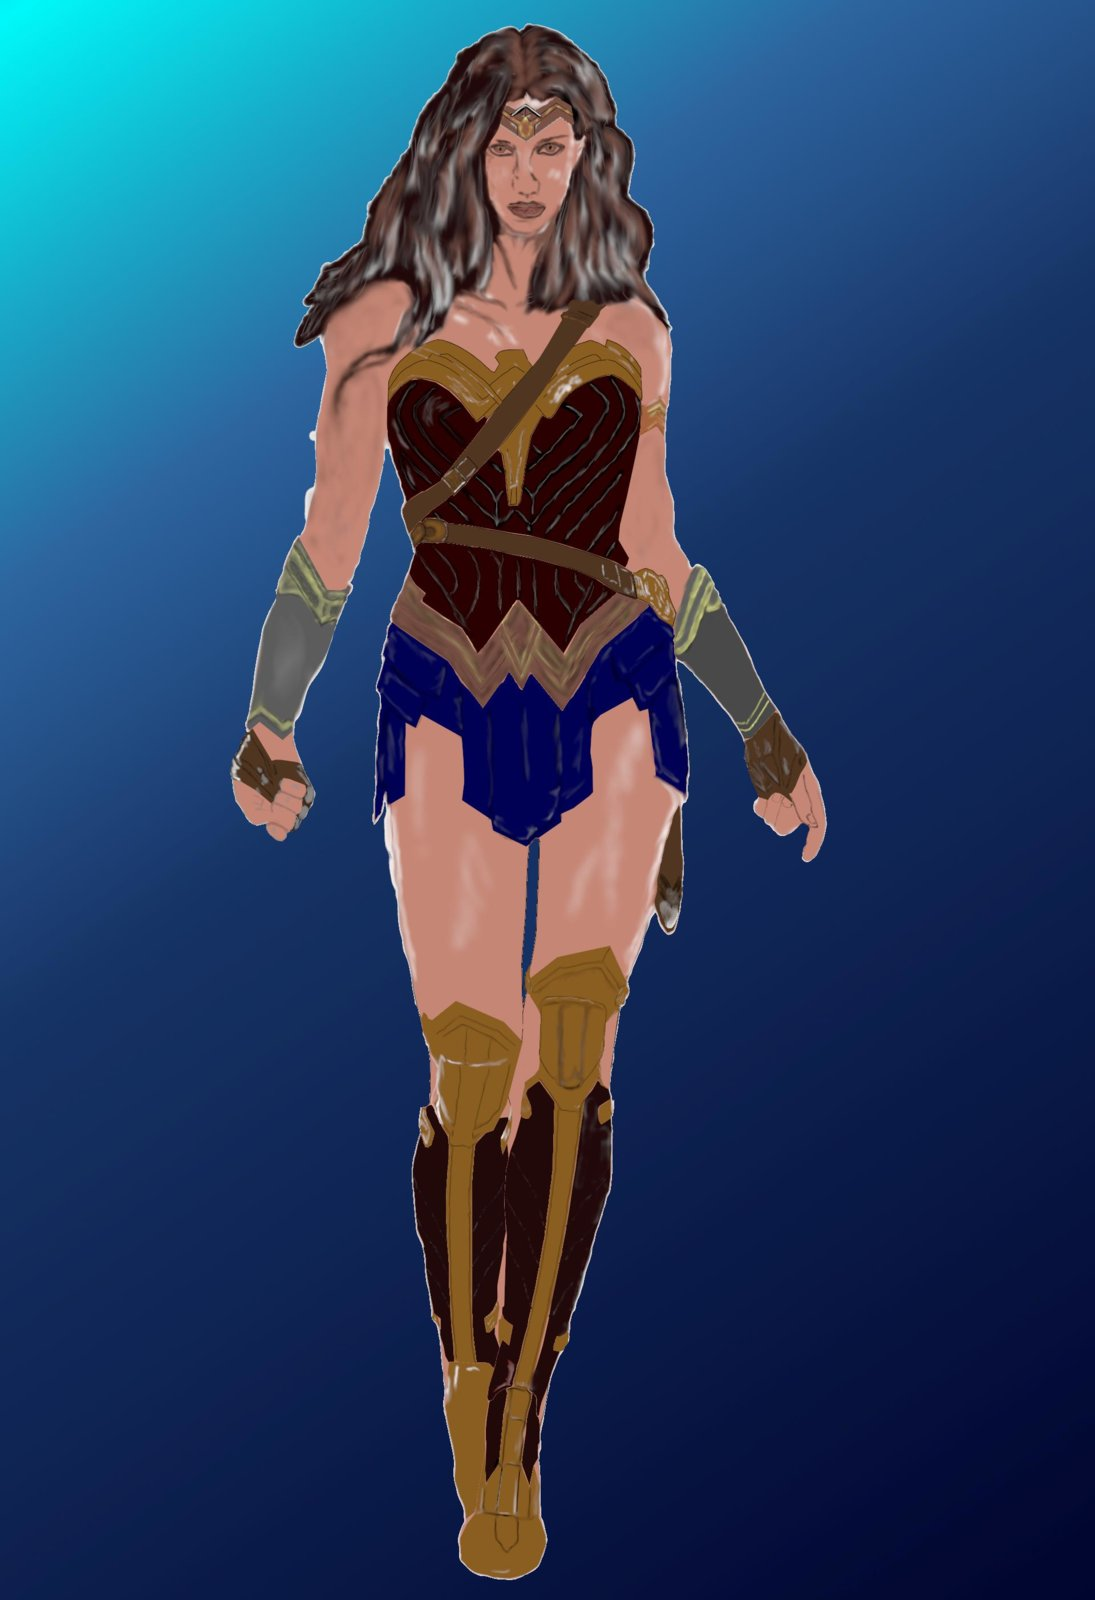 Wonder Woman Wacom.jpg